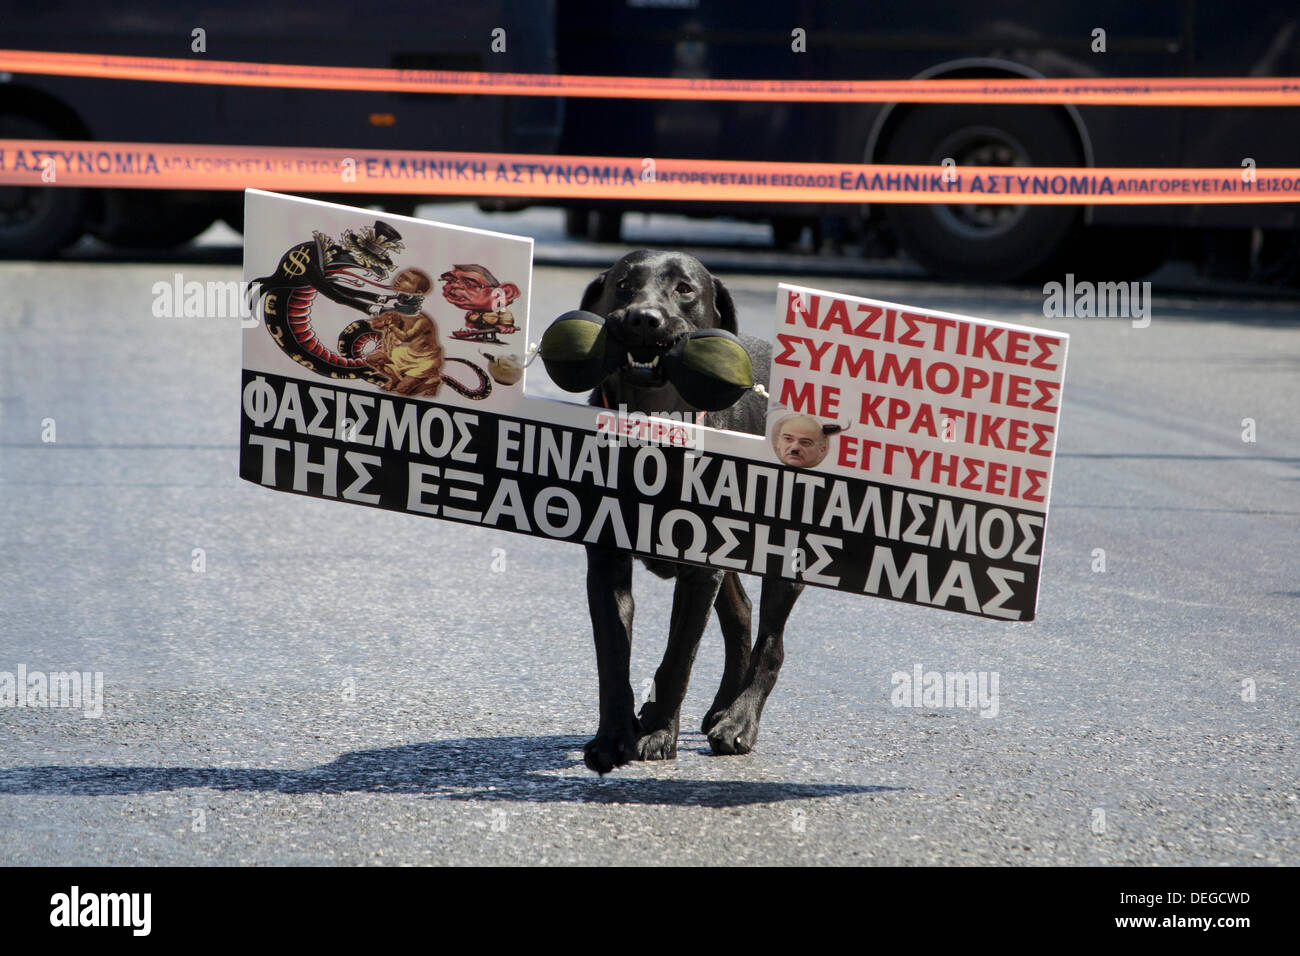 Athens, Greece, September 18th 2013. Greek public sector goes on 48 hour strike to protest against layoffs. A protest dog, in front of police lines, carries a placard that reads, 'Fascism is capitalism of our pauperization'. Credit:  Nikolas Georgiou / Alamy Live News - Stock Image